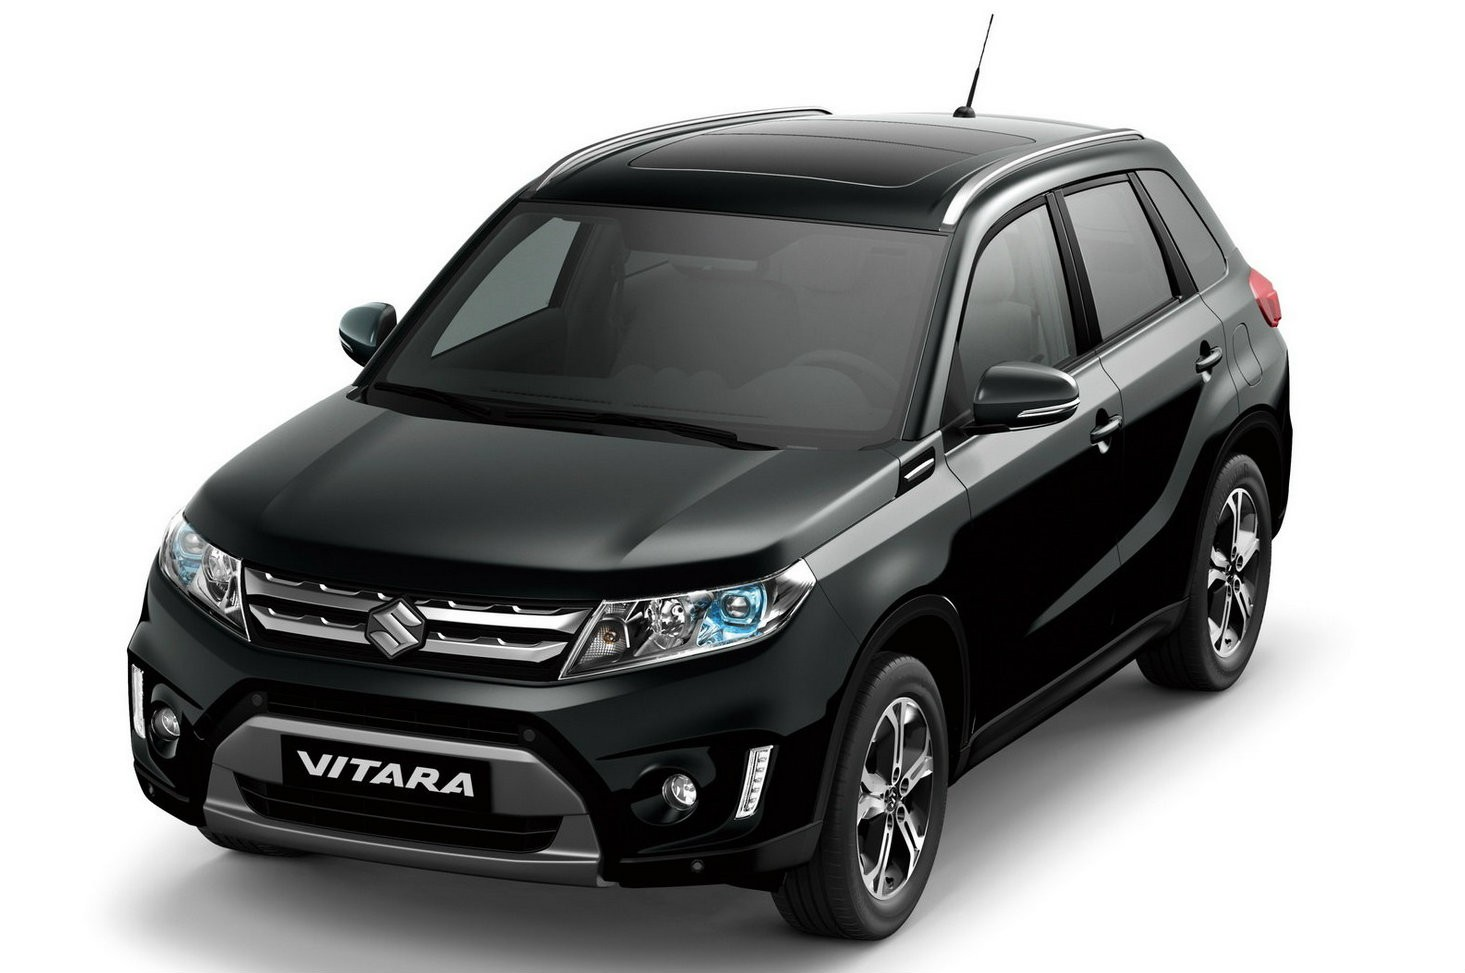 2015 suzuki vitara web black edition arriving in europe next year in. Black Bedroom Furniture Sets. Home Design Ideas